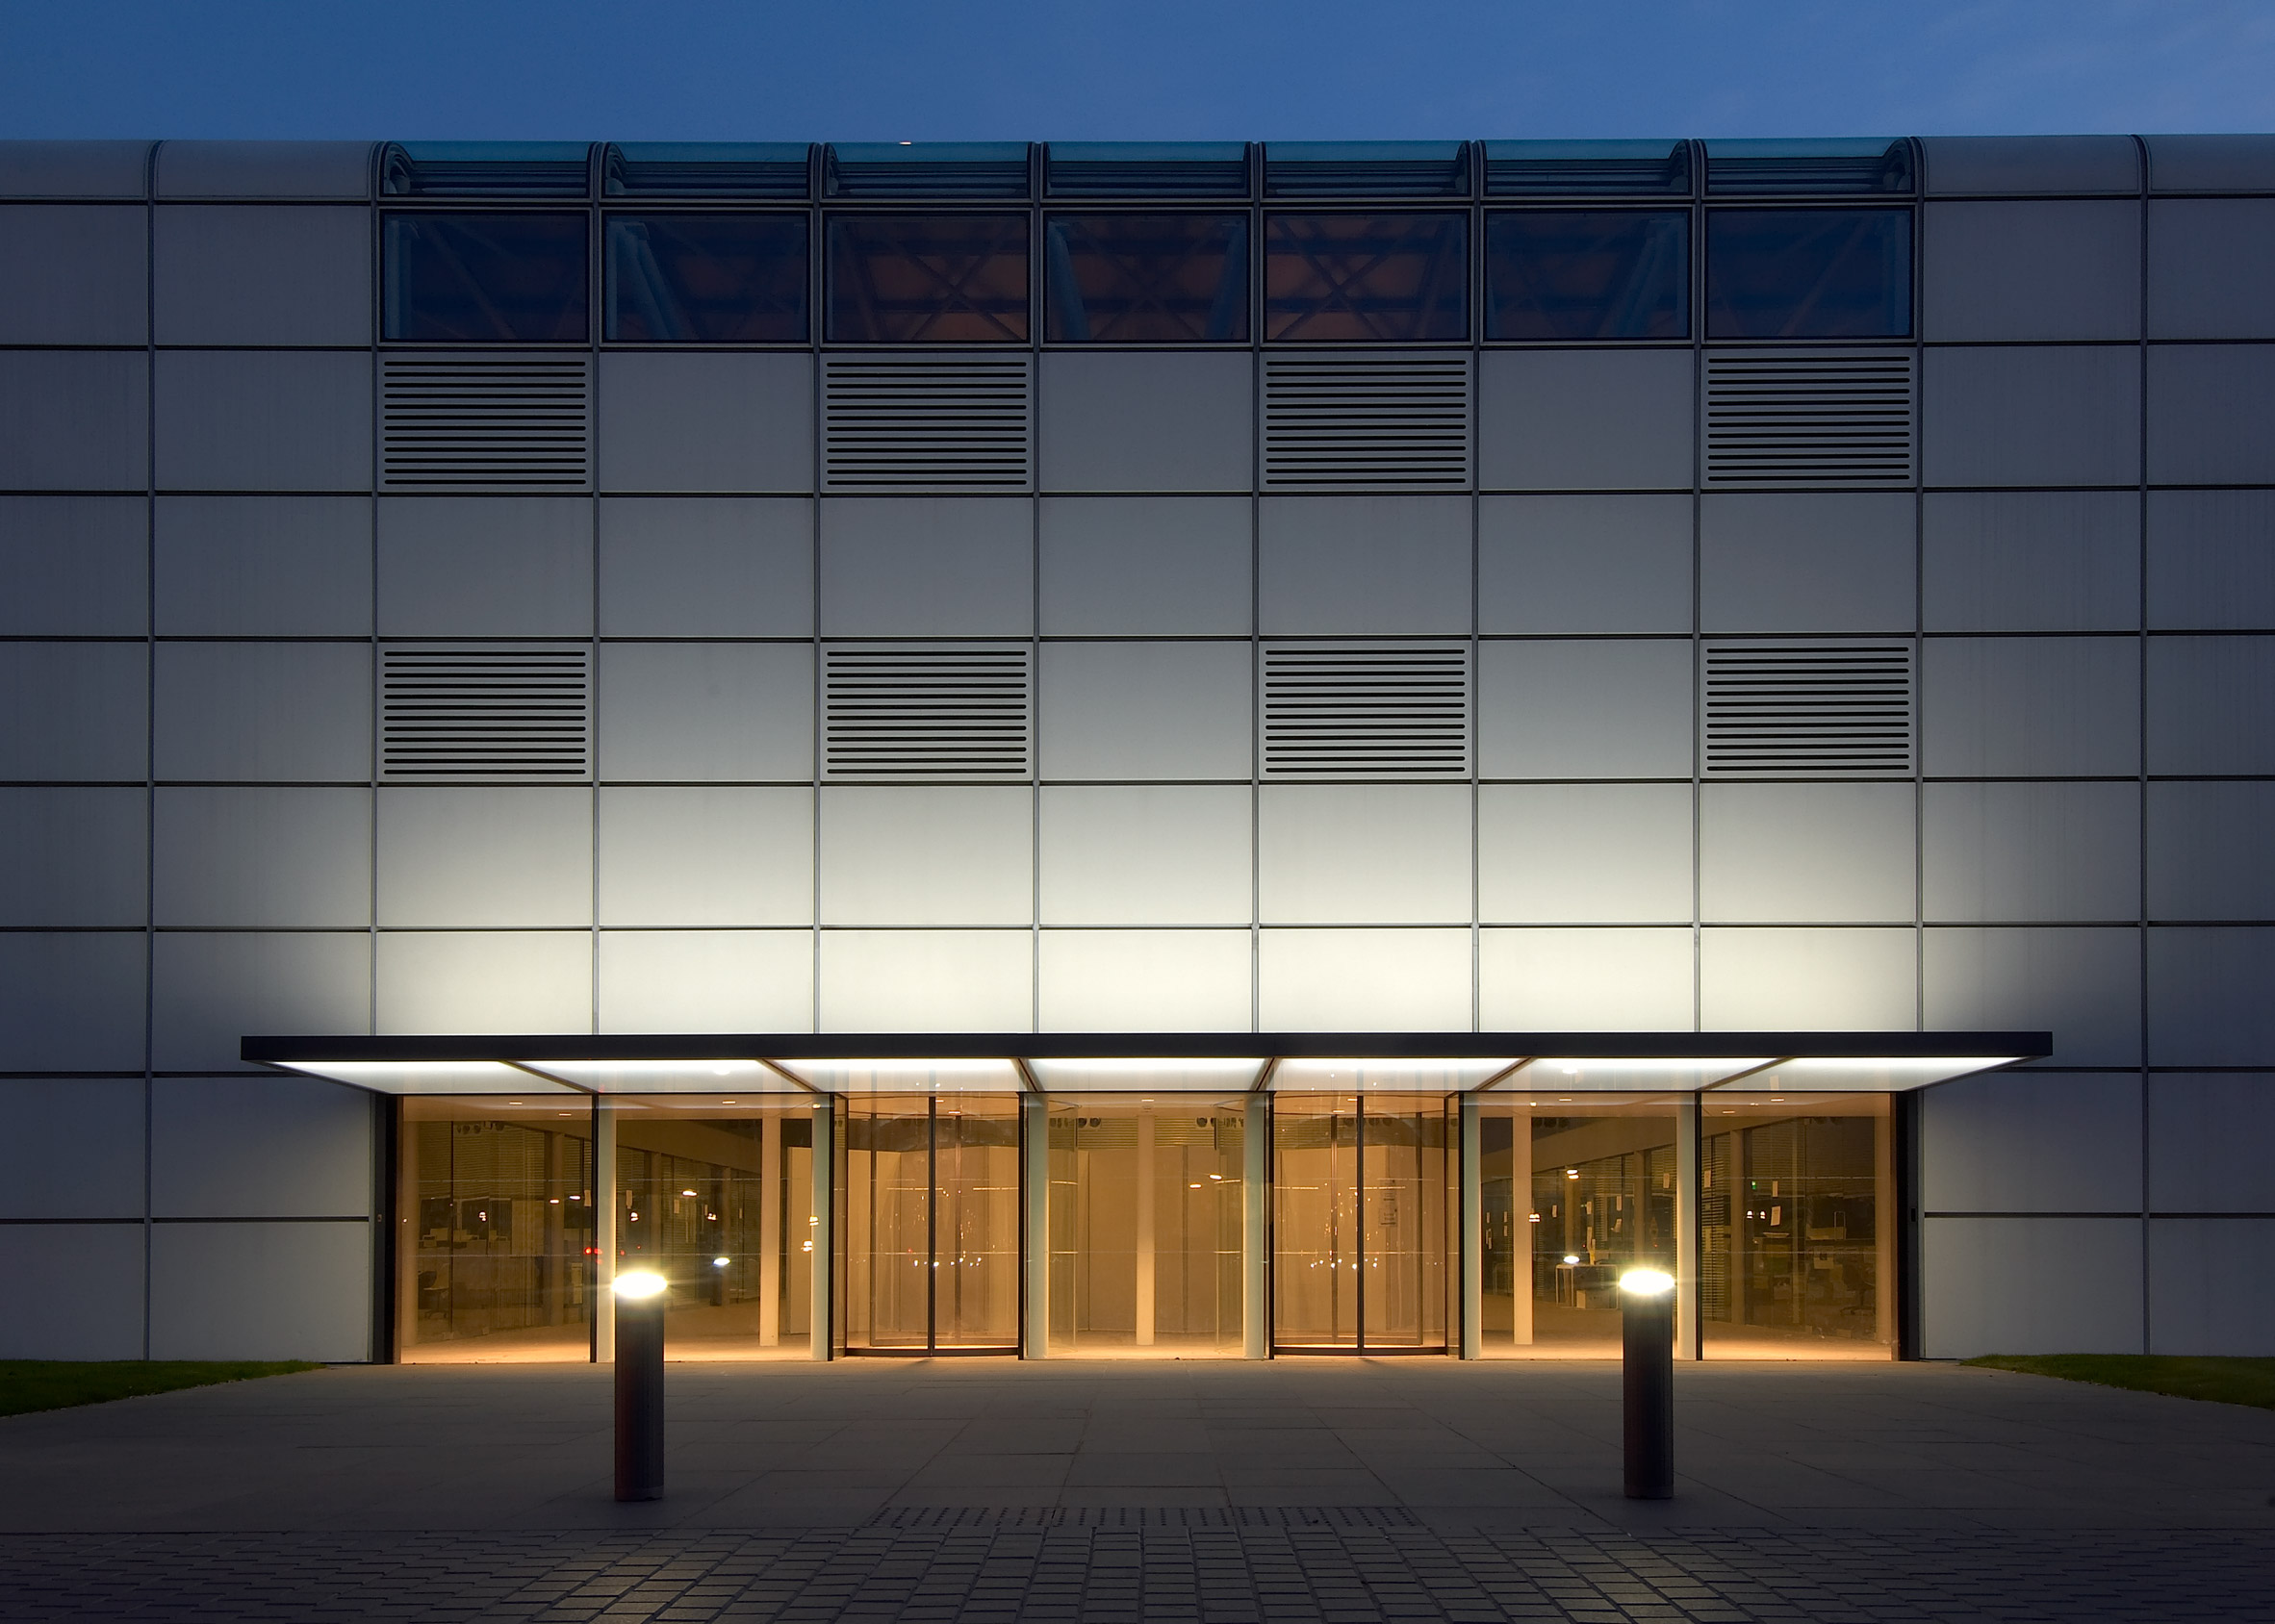 High-tech architecture: Sainsbury Centre for the Visual Arts by Norman Foster